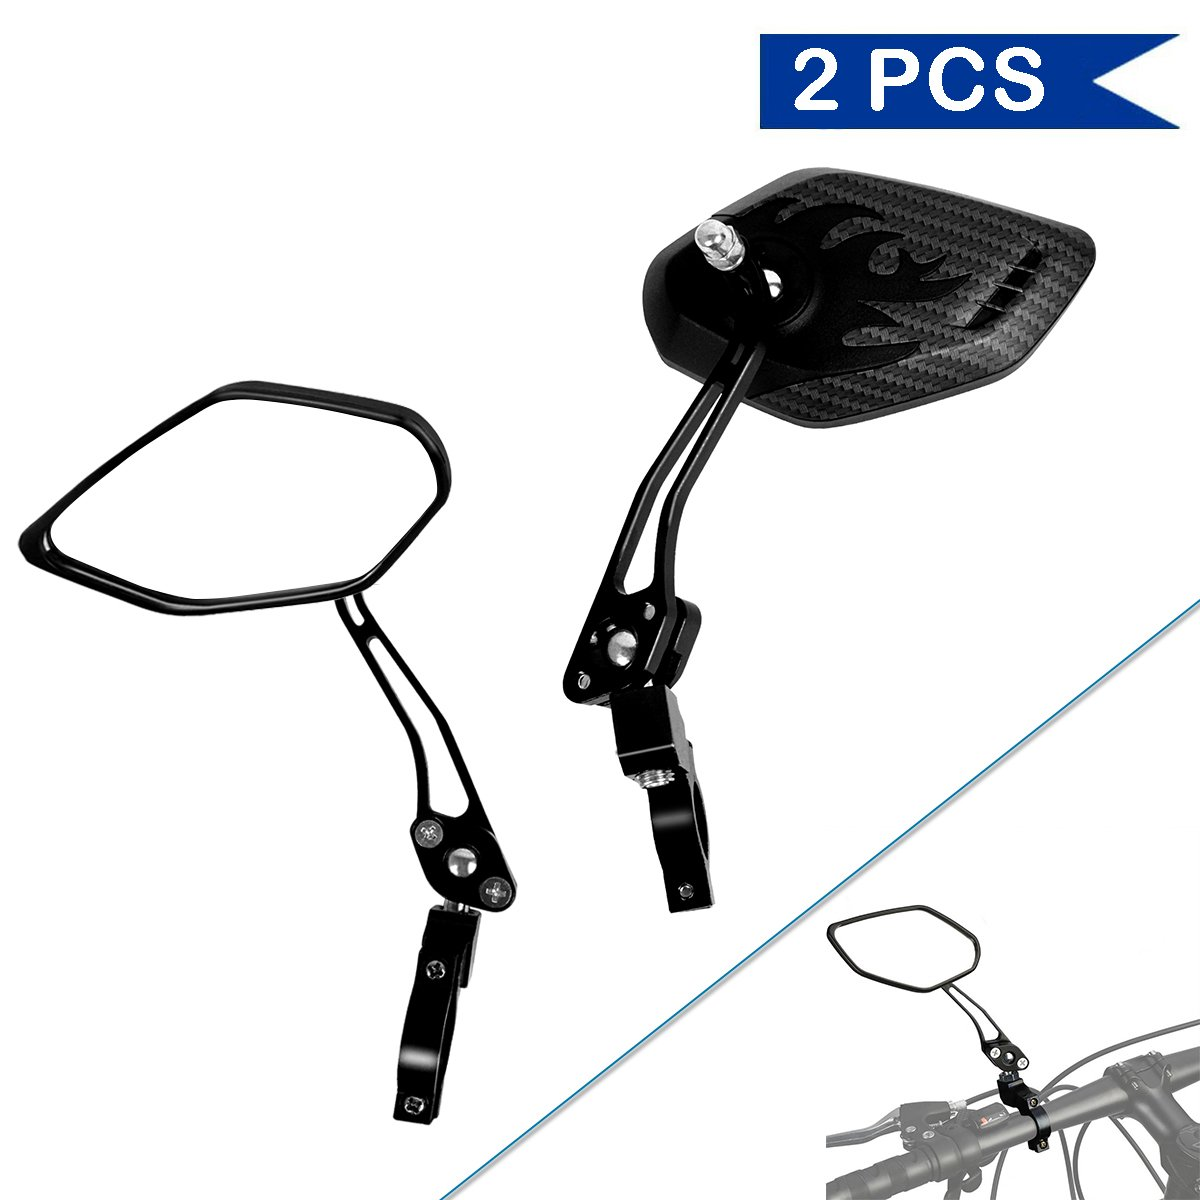 Bike Mirror, Veanic Universal Adjustable Rearview Handlebar Safety Glass Mirrors Lens for Mountain Road Cycling Bicycle Electric Bike - Pair